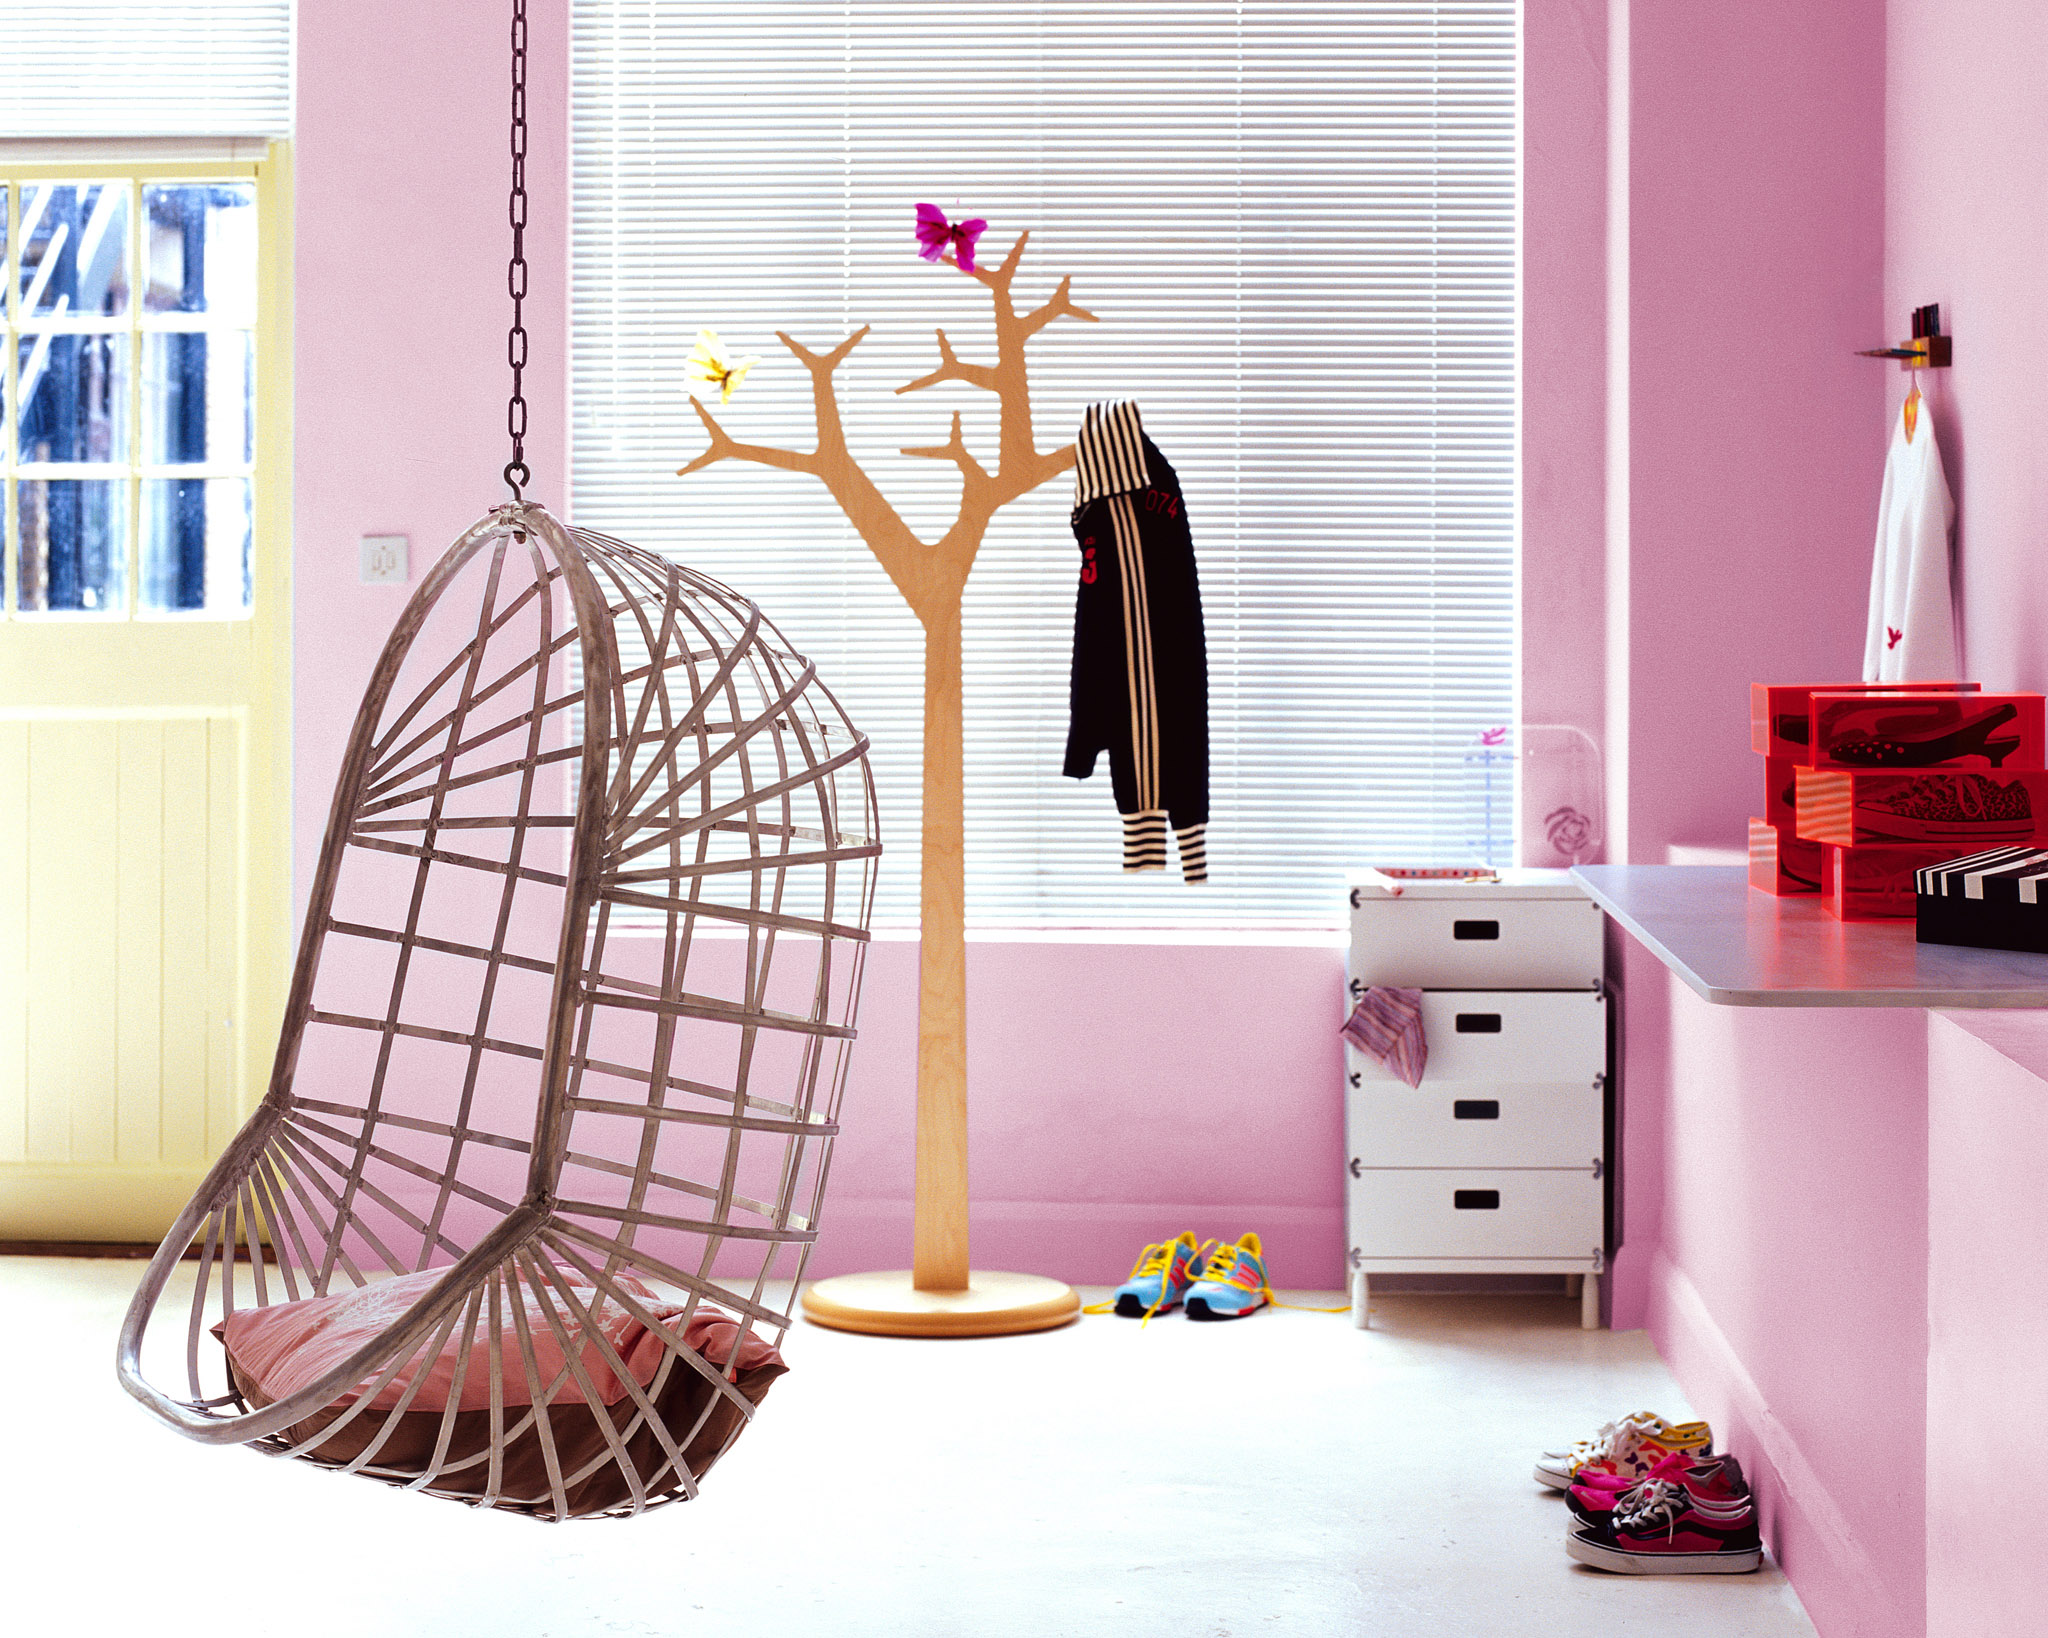 Pairing pink with neutral in a child's bedroom